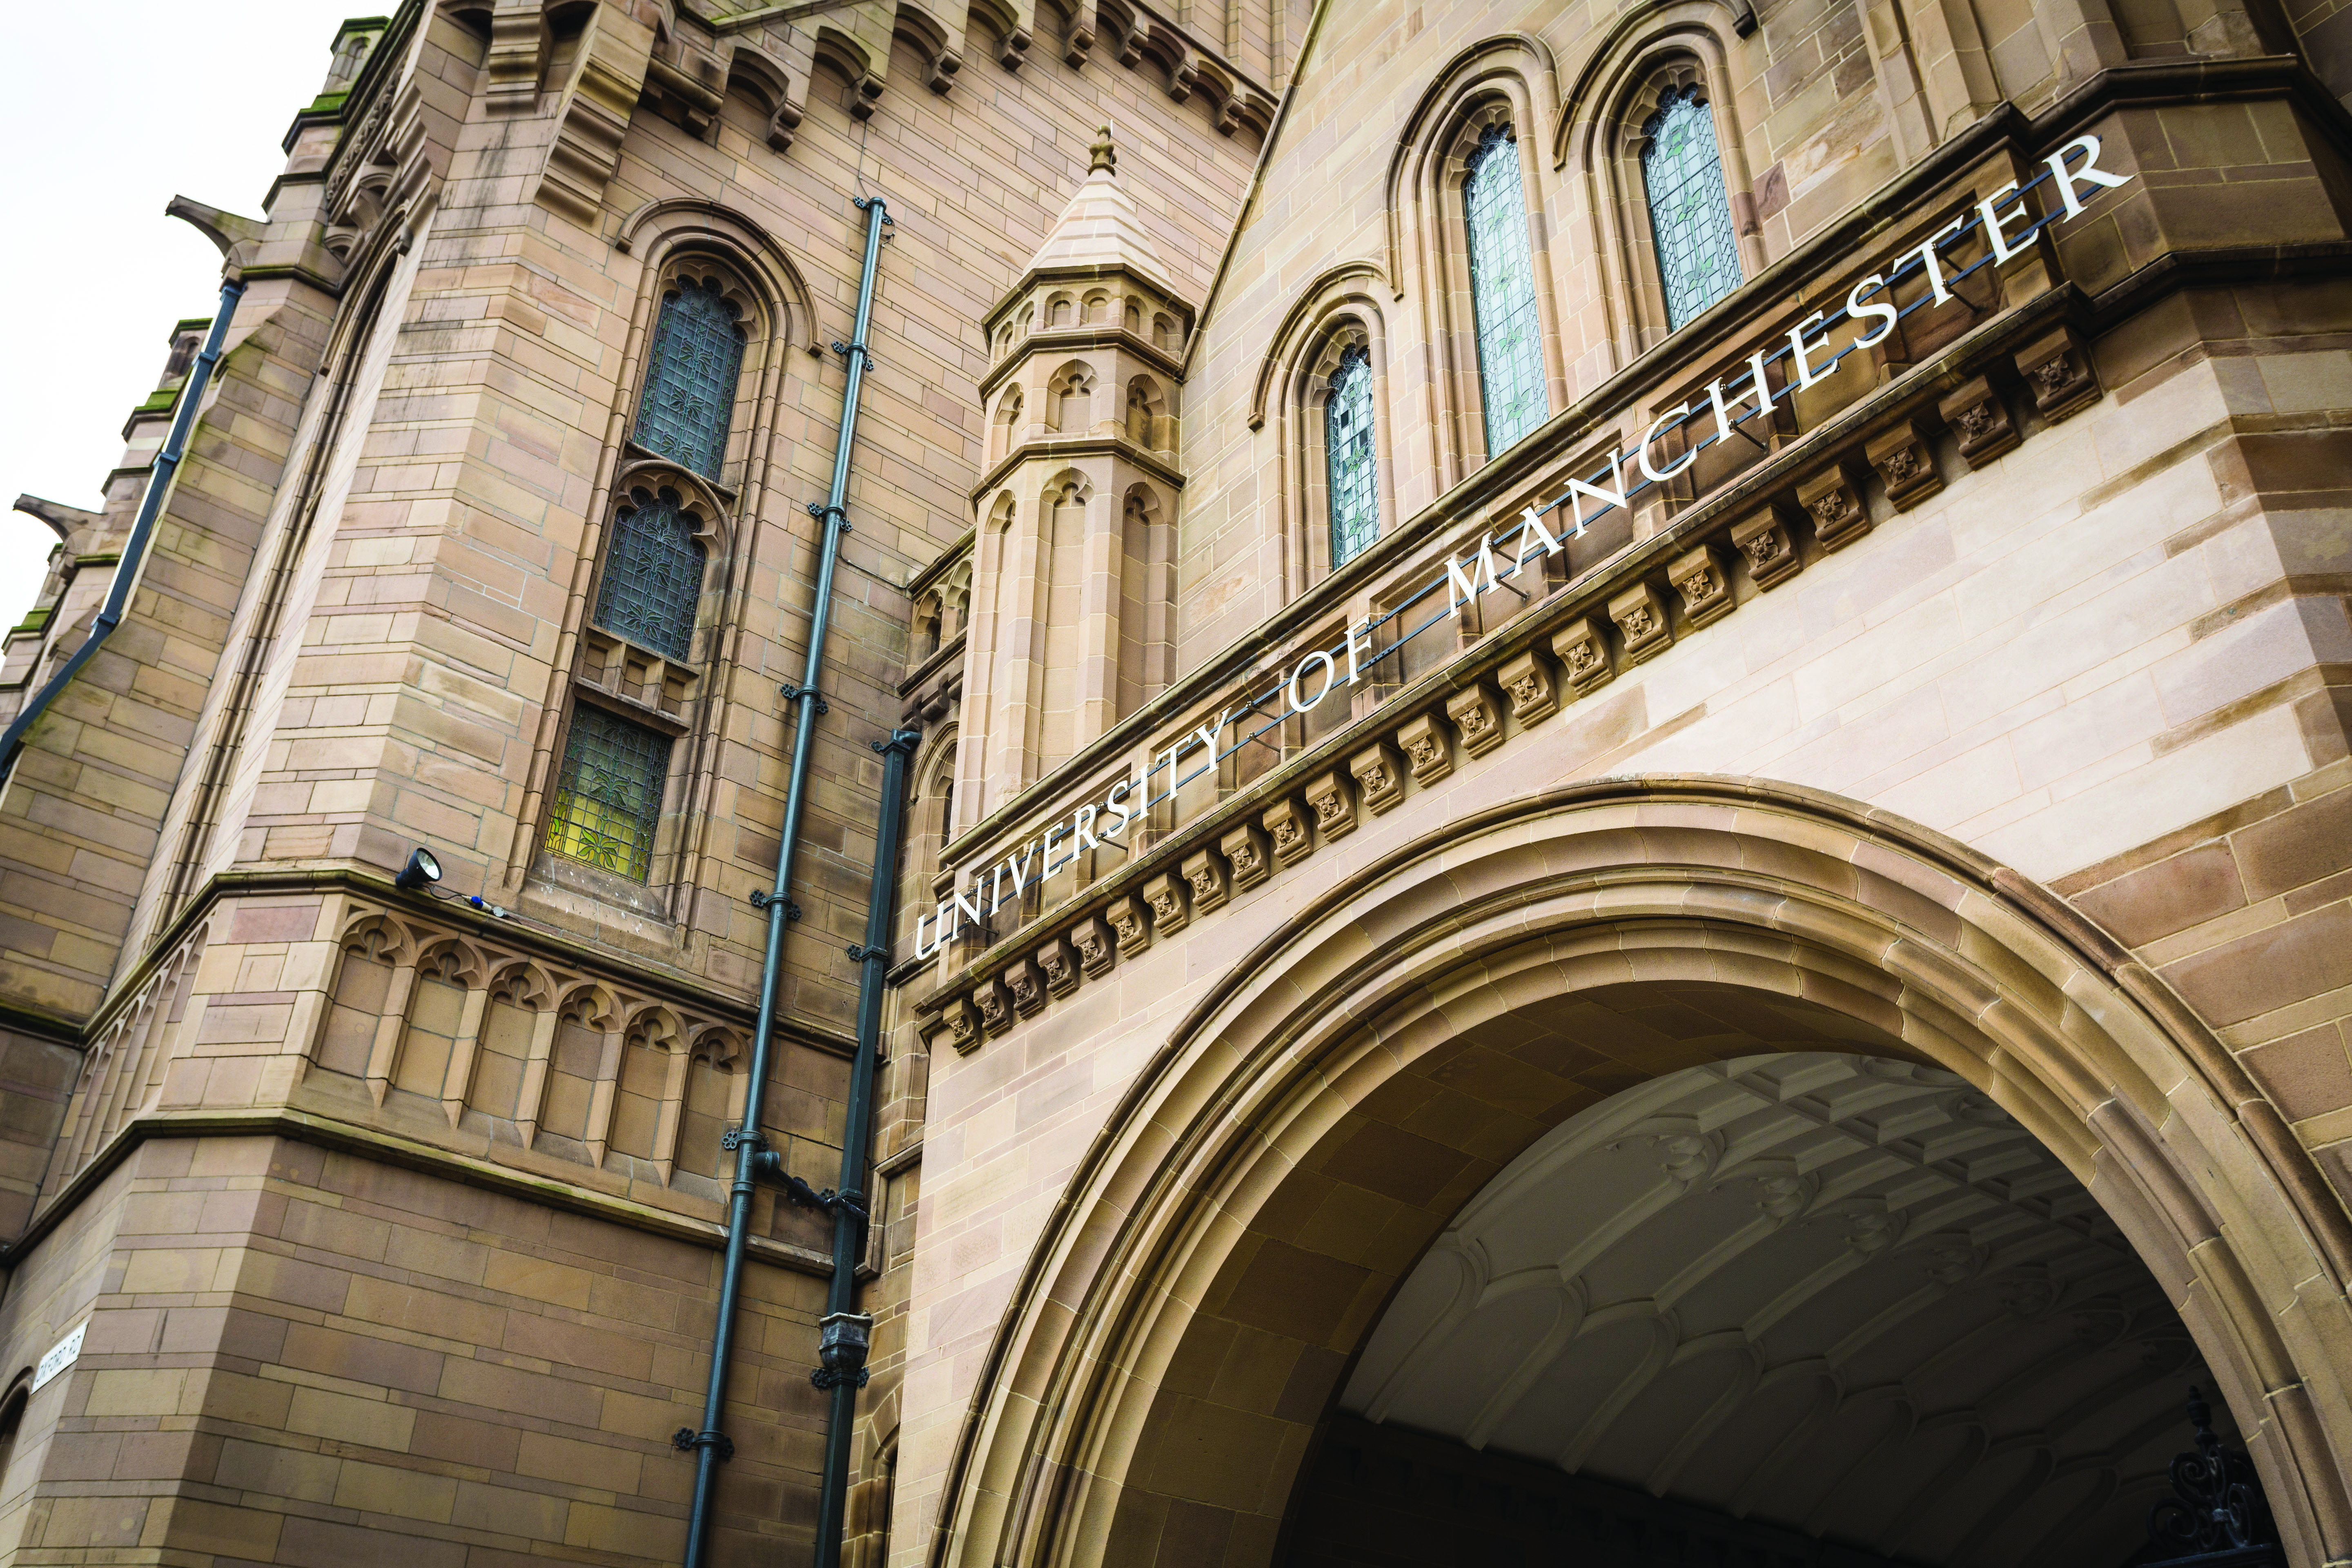 Exterior view of Whitworth Hall at The University of Manchester